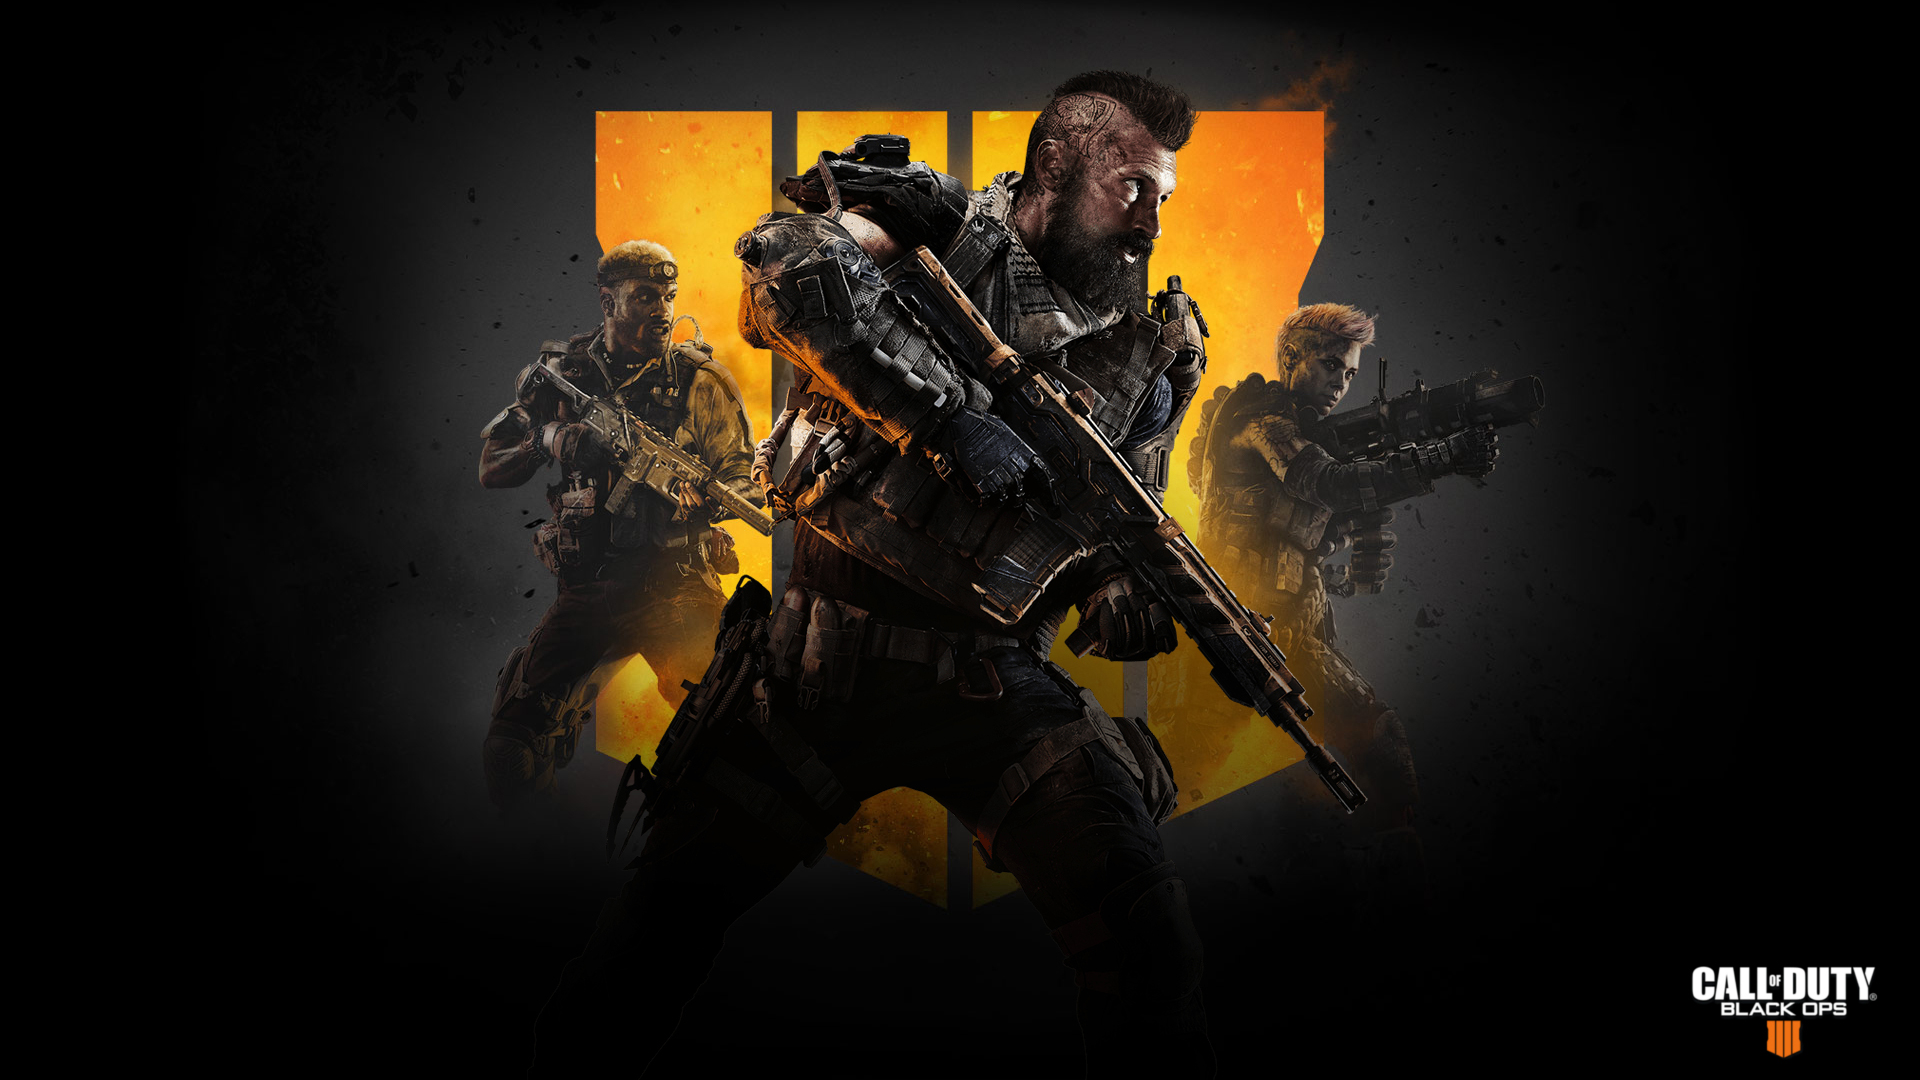 Call Of Duty Black Ops 4 Widewallpapers Hd Wallpapers